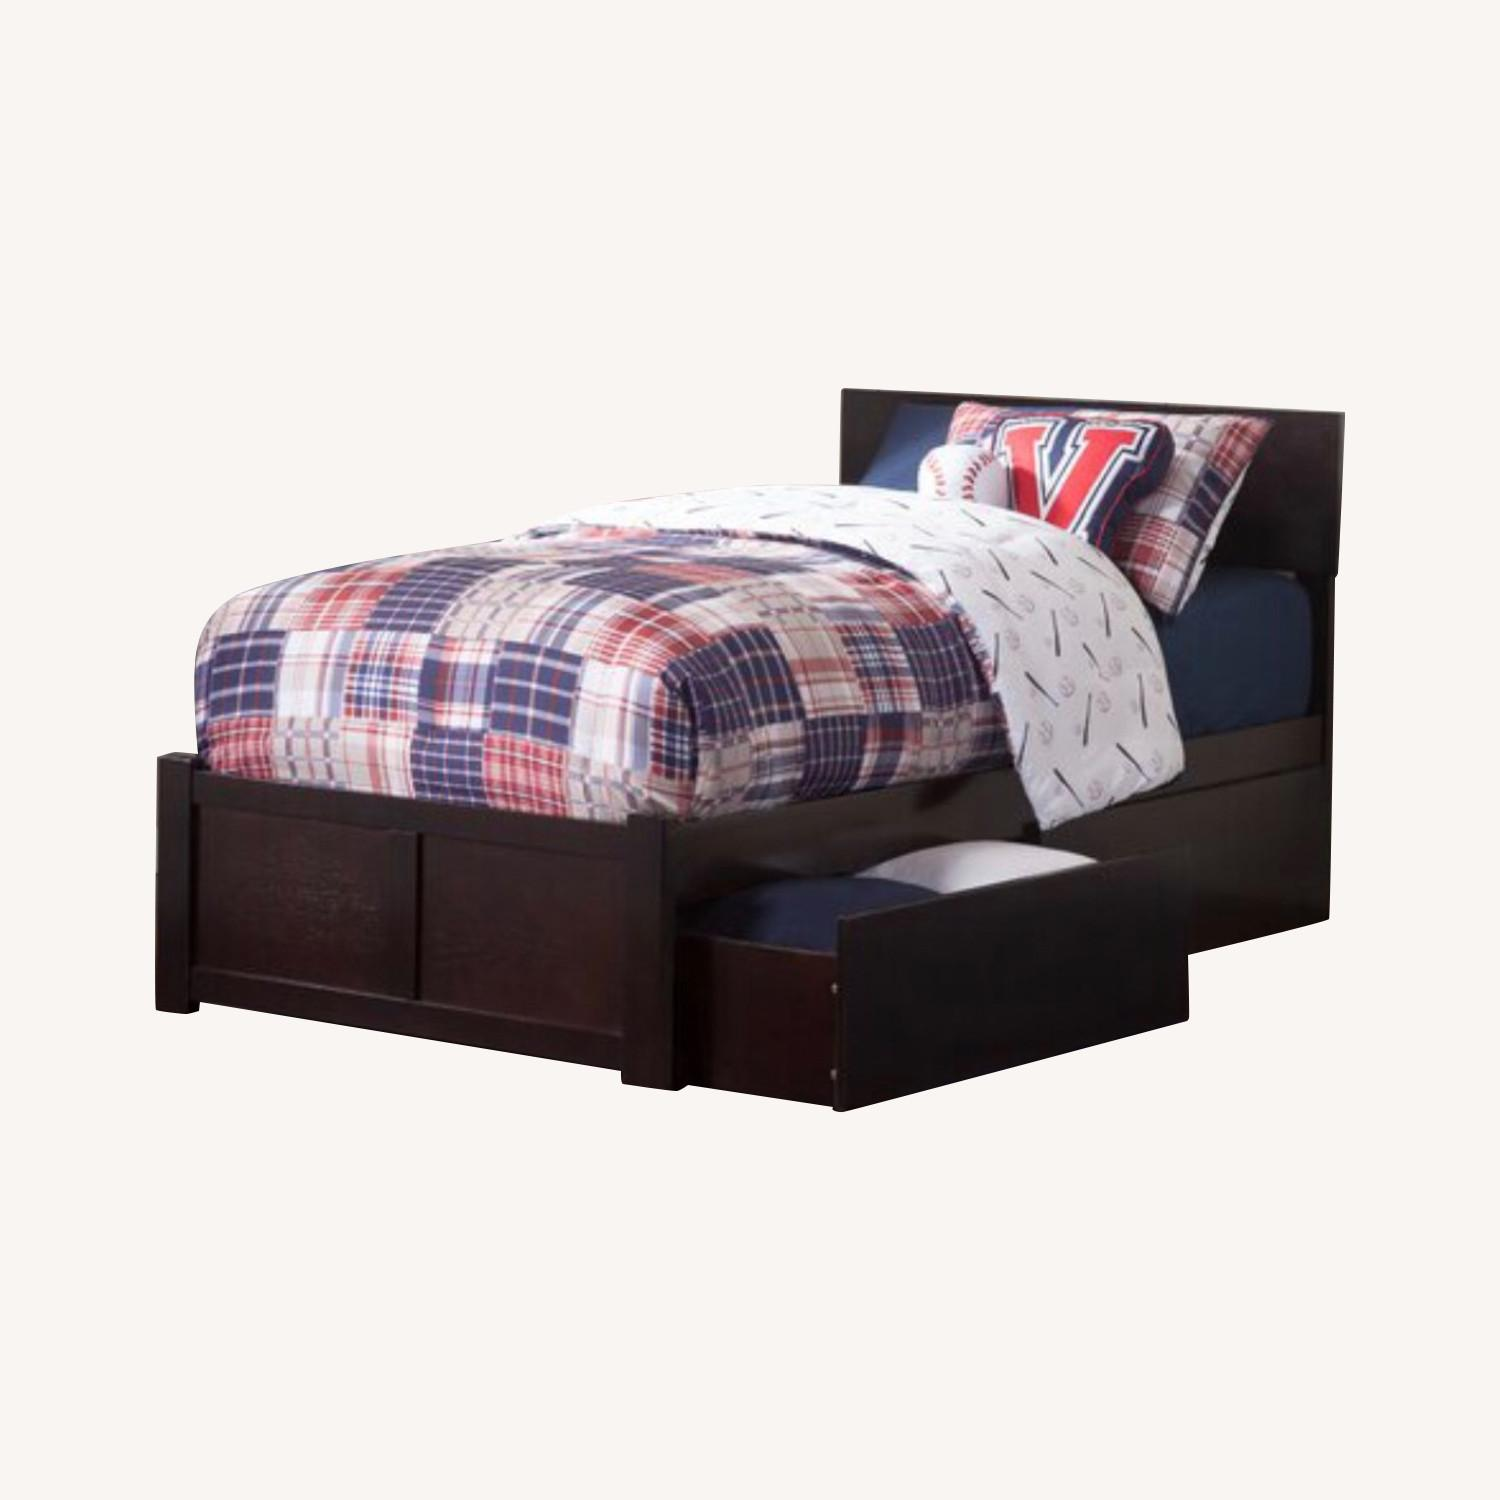 Full size bed in ESPRESSO wood w/drawers or trundle - image-0